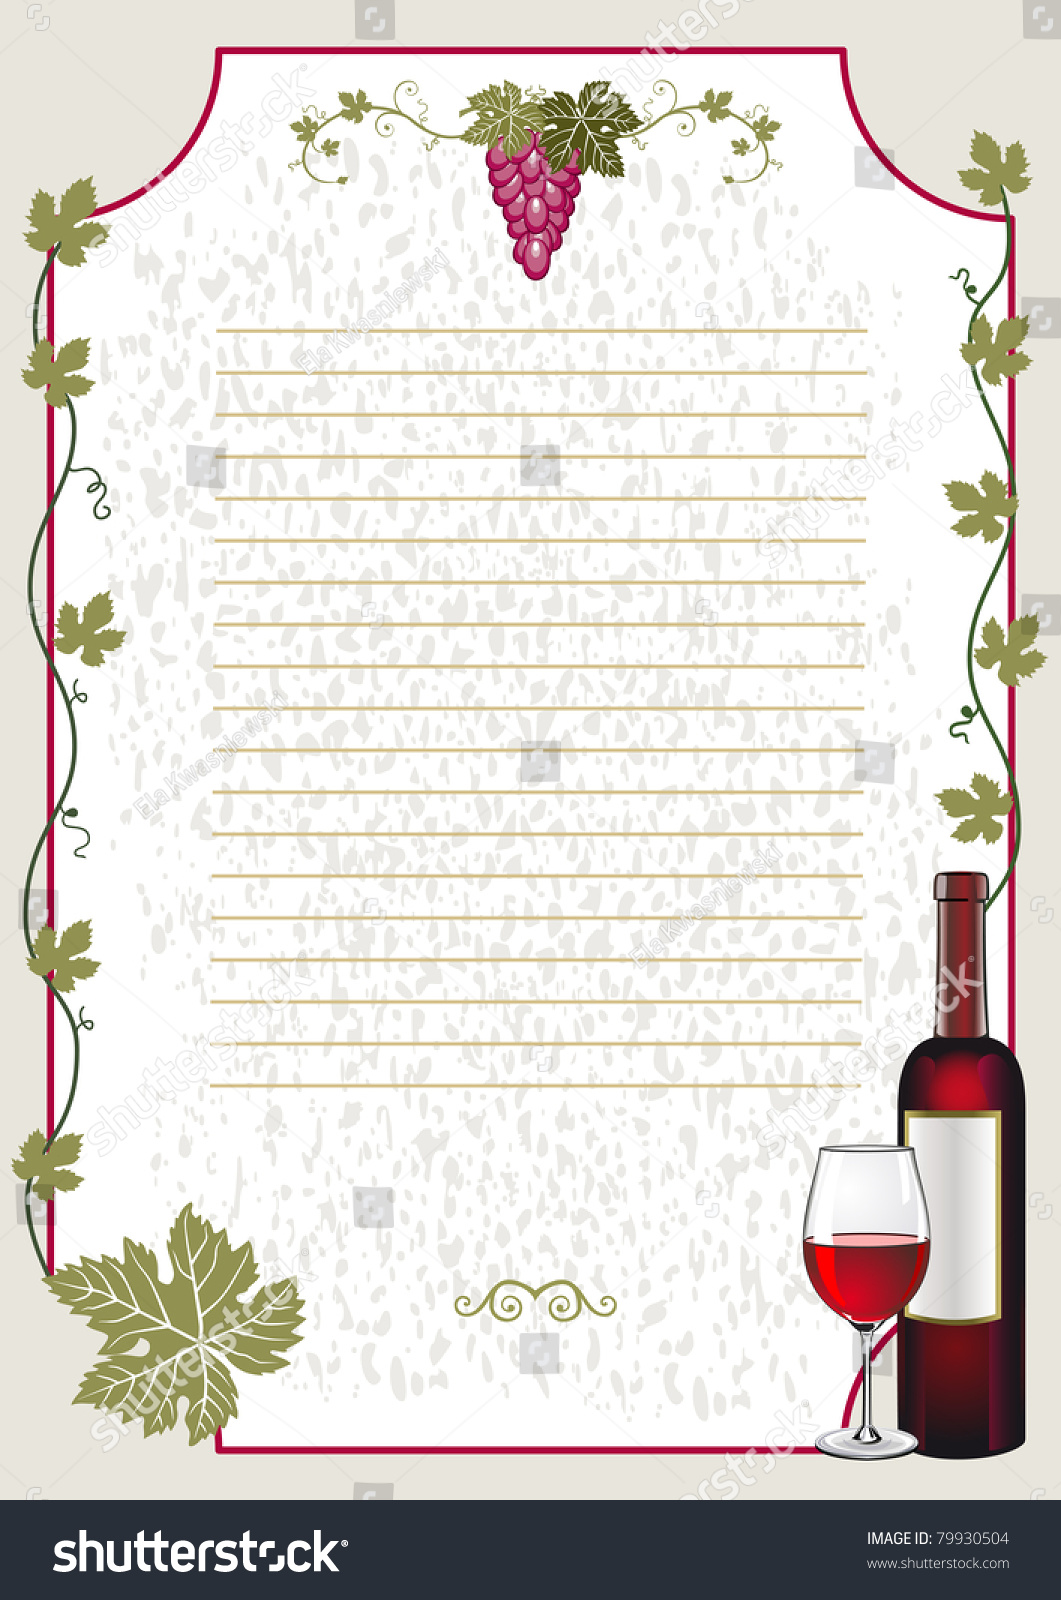 Wine card background restaurant menu template stock vector wine card background restaurant menu template bottle of red wine glass and bunch pronofoot35fo Gallery